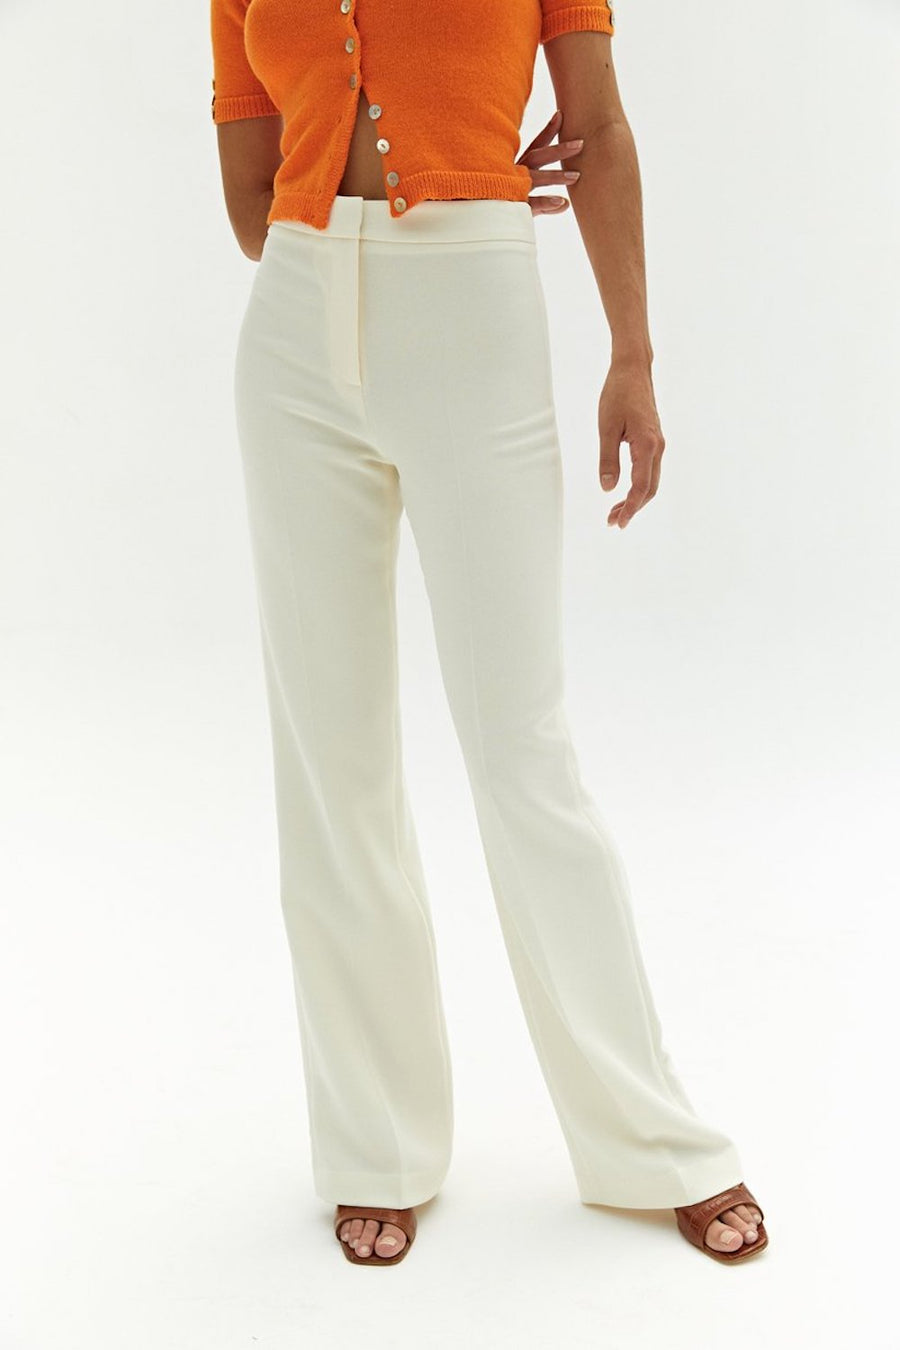 Becky Pant | Ivory | pants NZ | MUSIER PARIS NZ | Black Box Boutique Auckland | Womens Fashion NZ